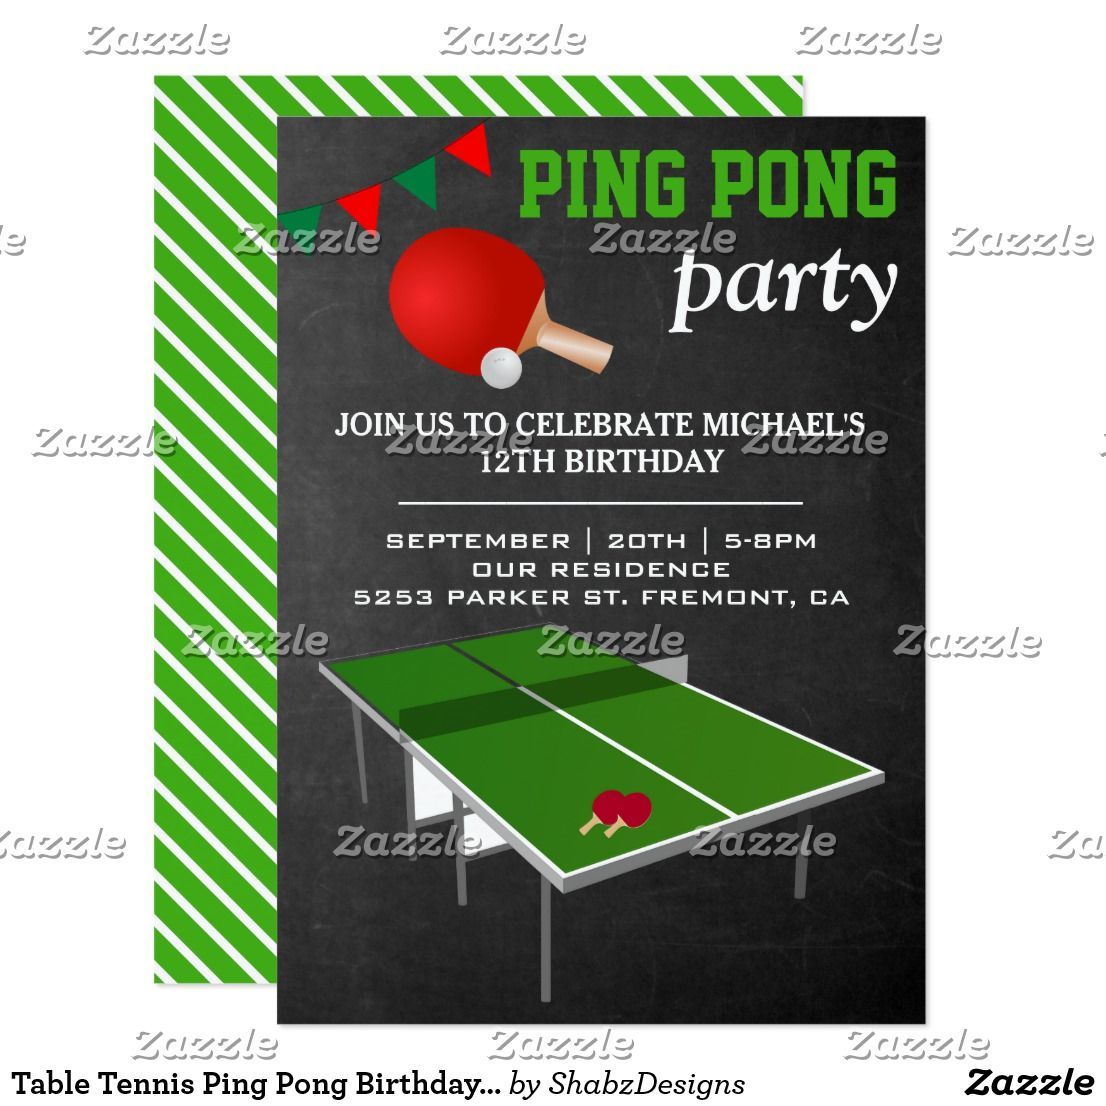 Table Tennis Ping Pong Birthday Party Invitation Zazzle Com Birthday Party Invitations Fun Birthday Party Party Invitations